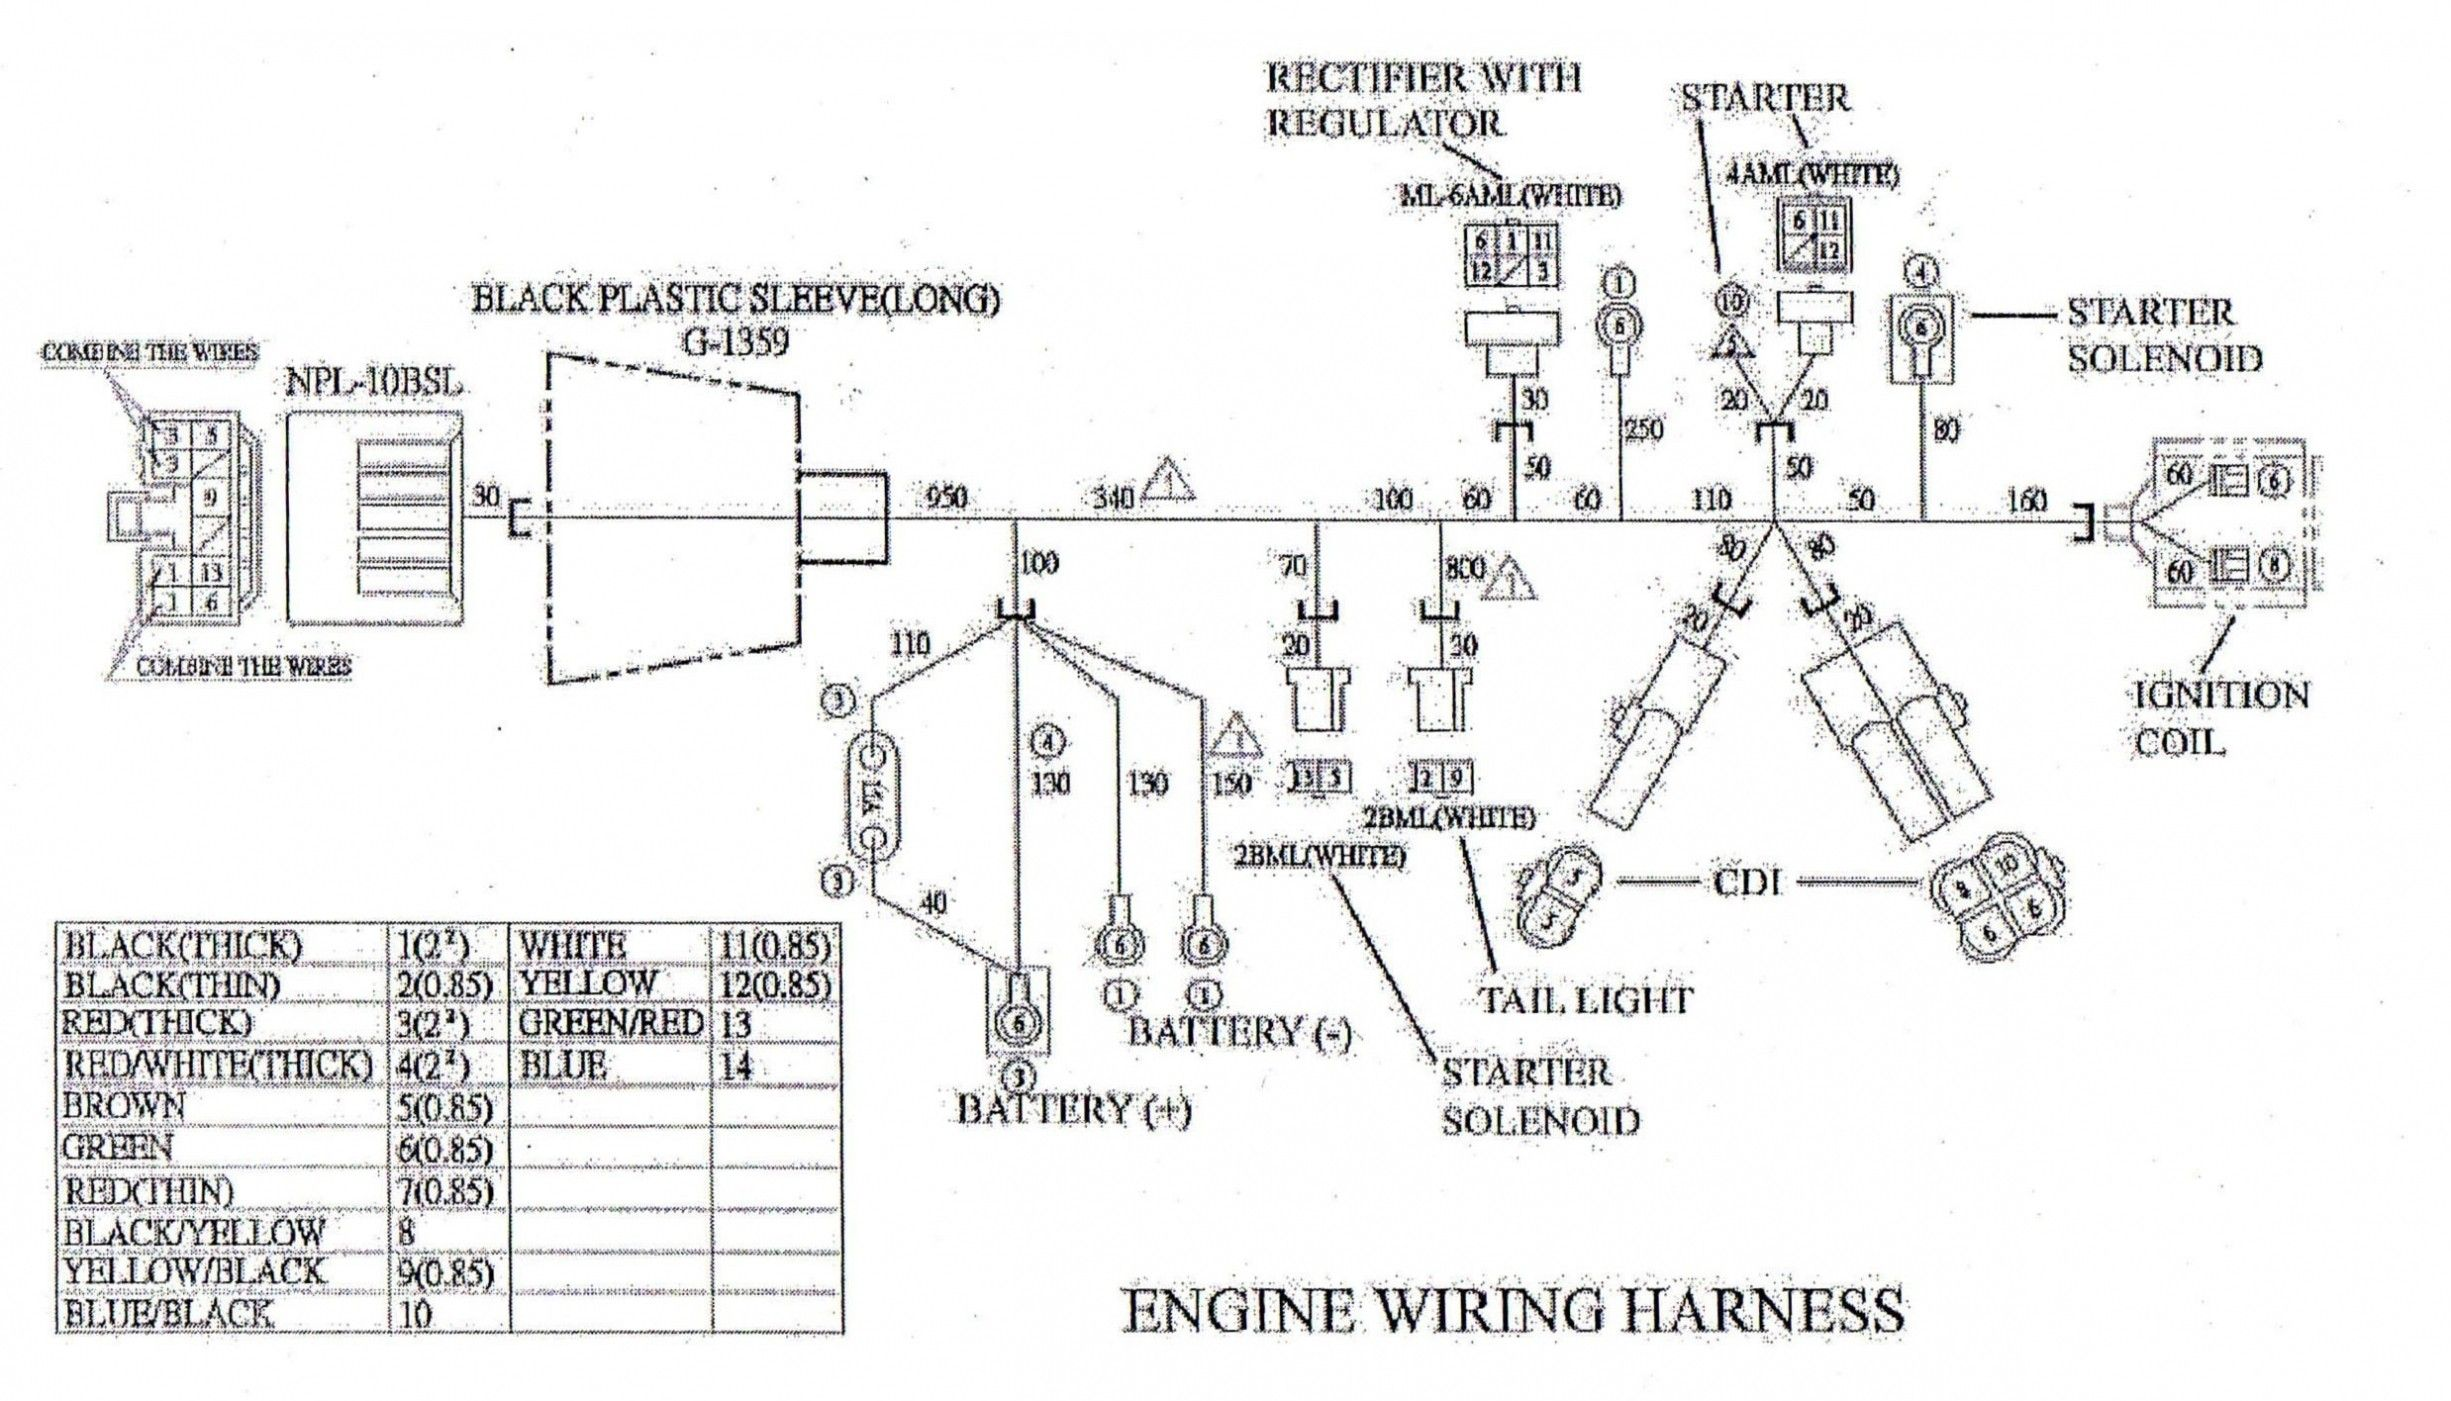 Vipper 4 Wire Diagram In 2021 Ford Ranger Automotive Logo Electrical Diagram